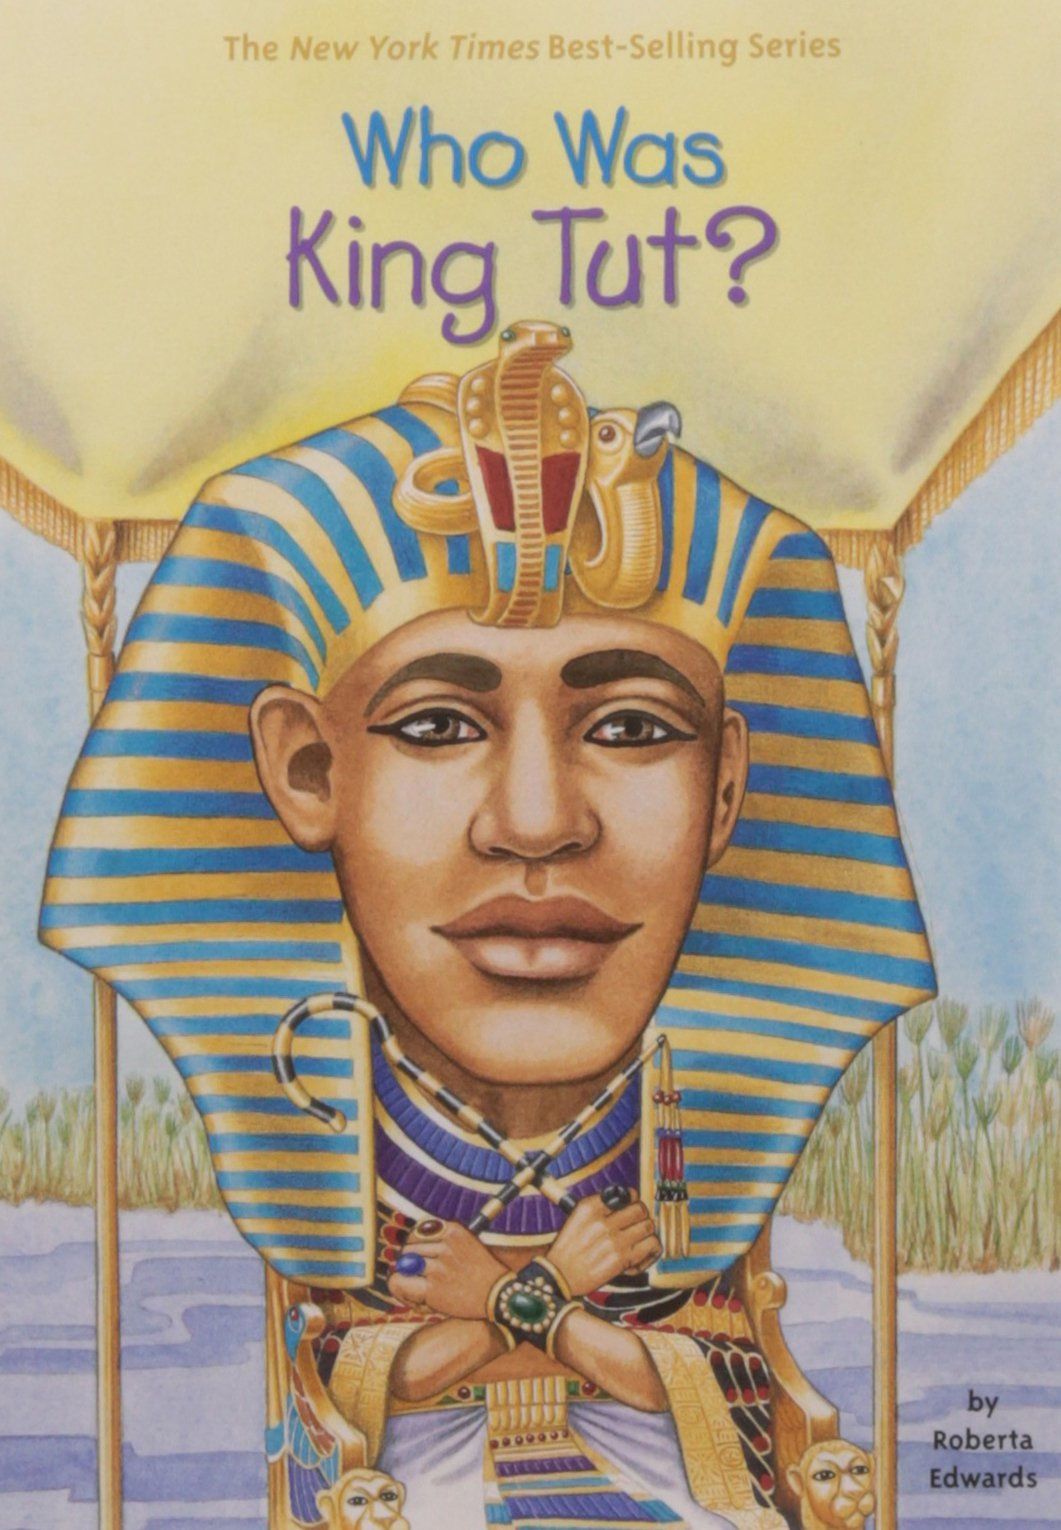 Who Was Book Series Images King Tut HD Wallpaper And Background Photos